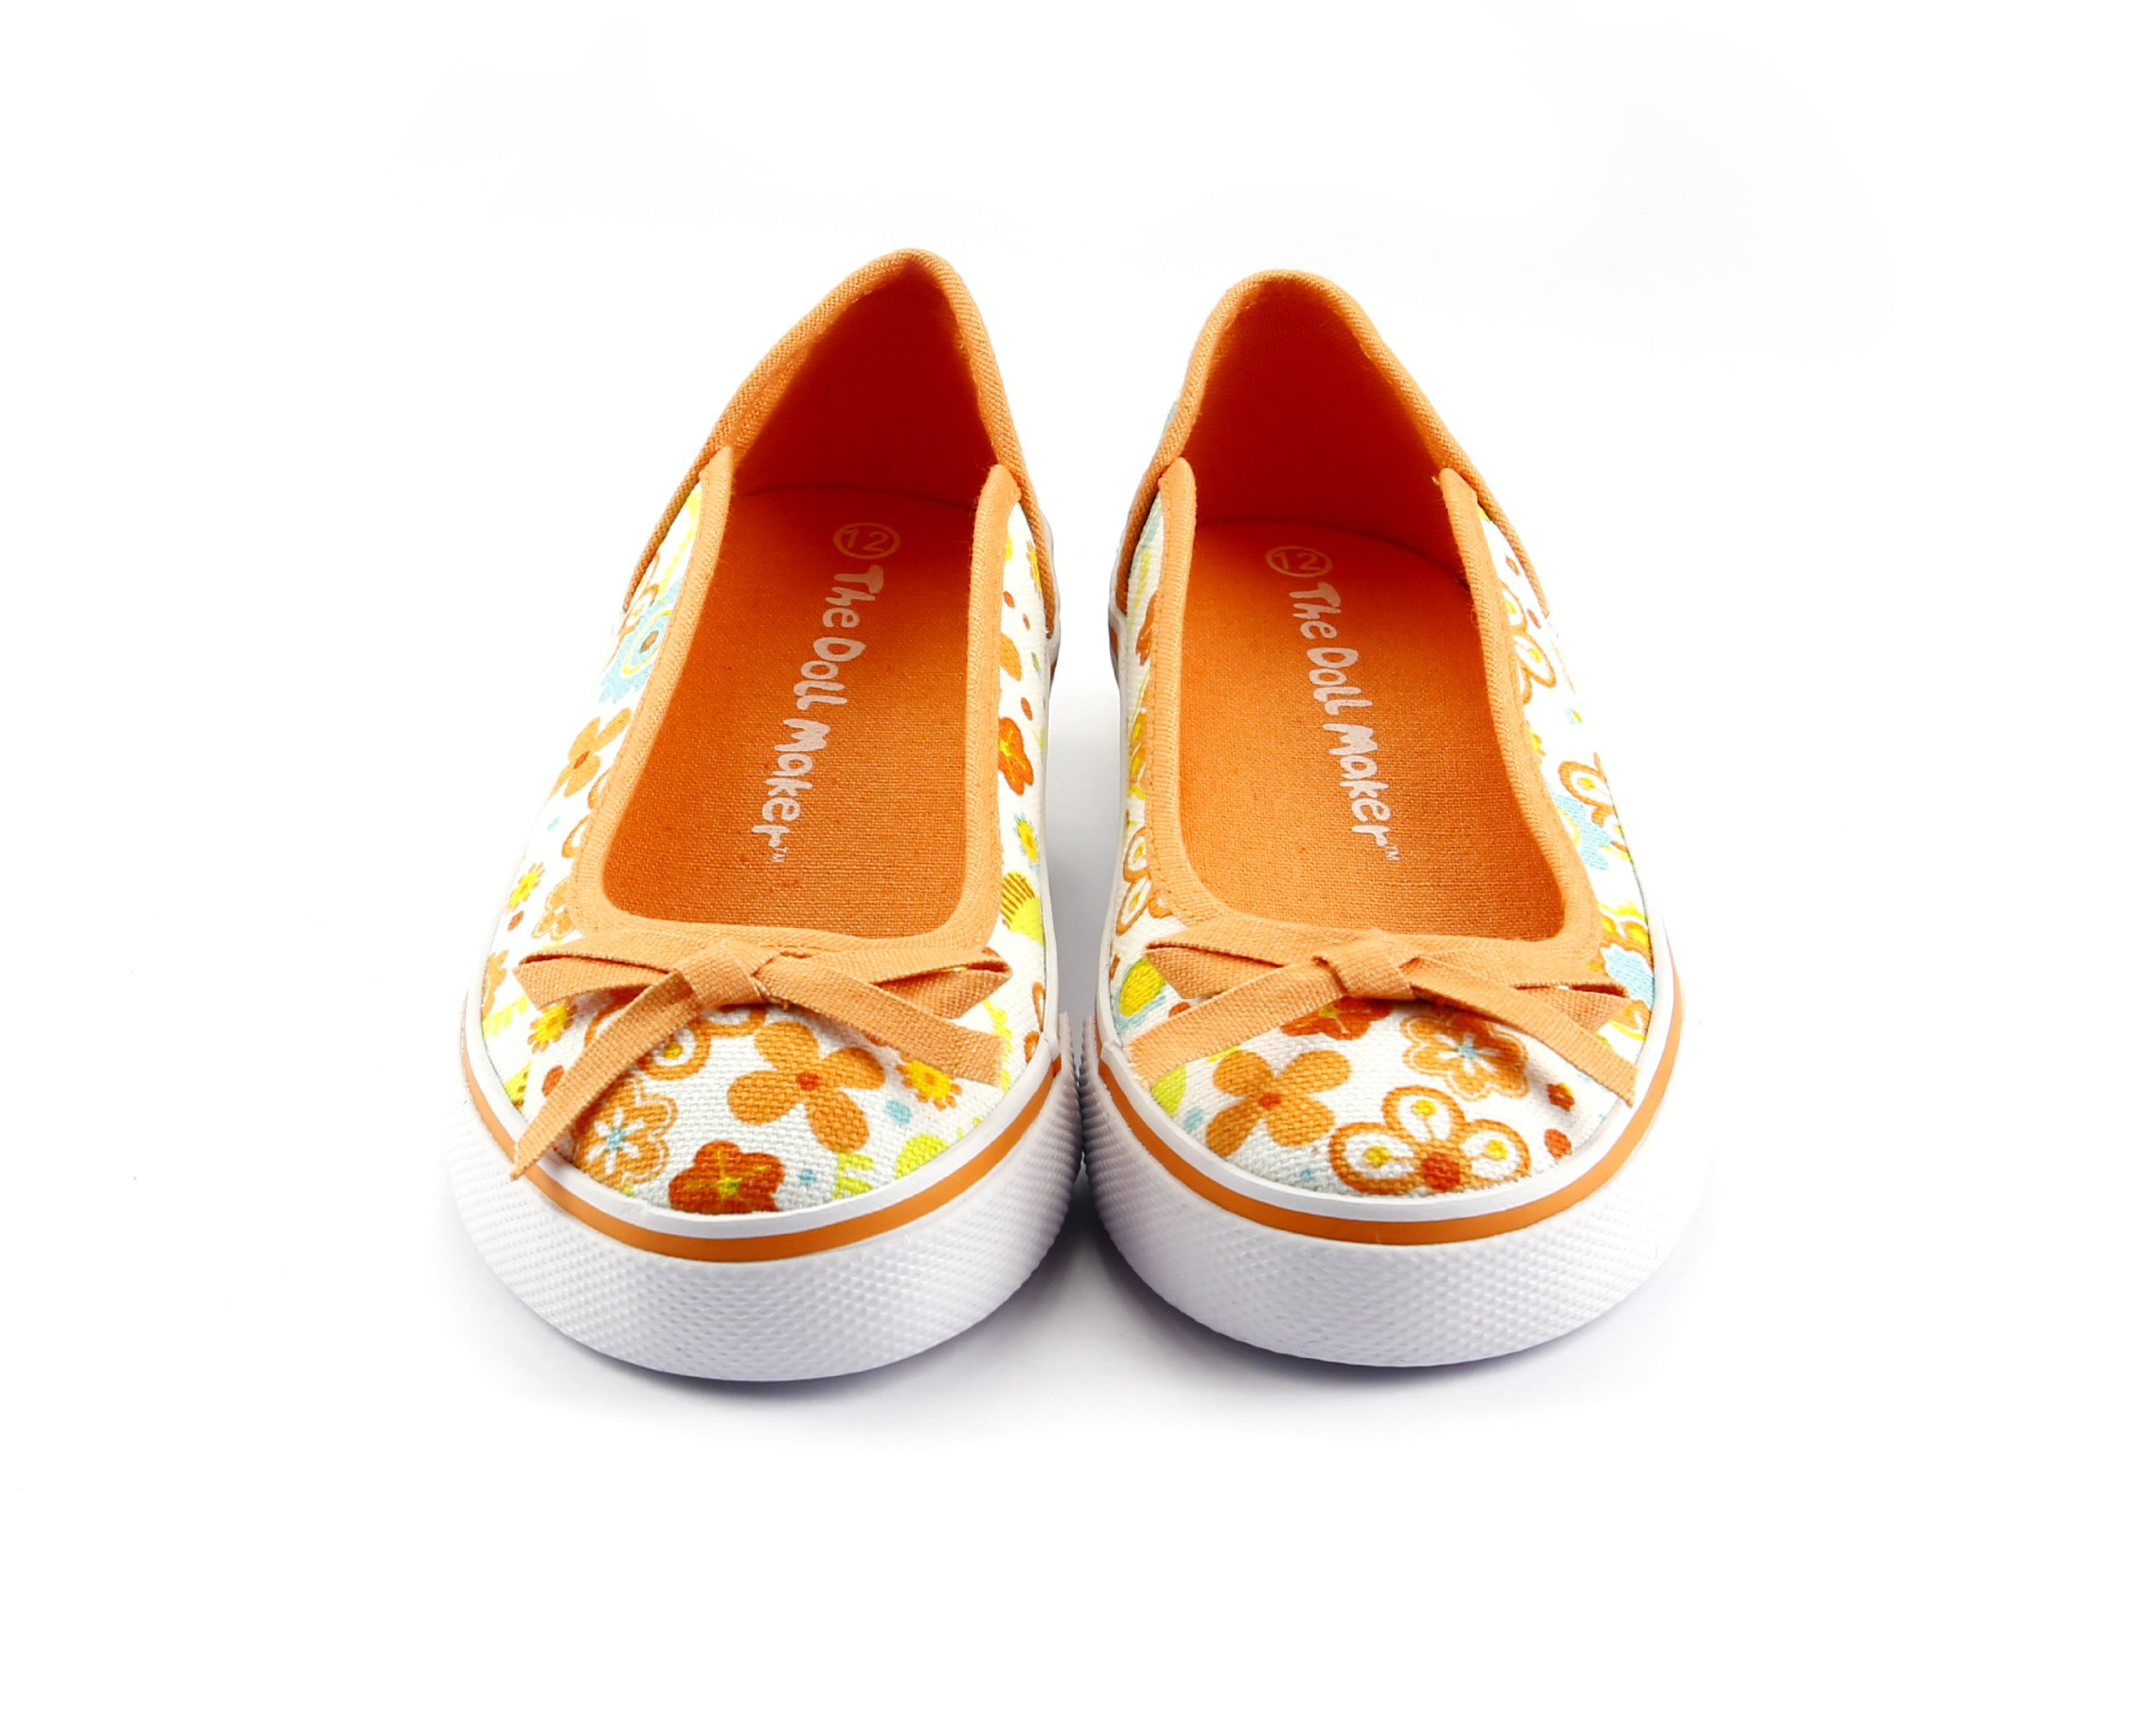 Girls Floral Print Sneaker Orange Spring Summer Back To School Shoes Size 11 #1332138